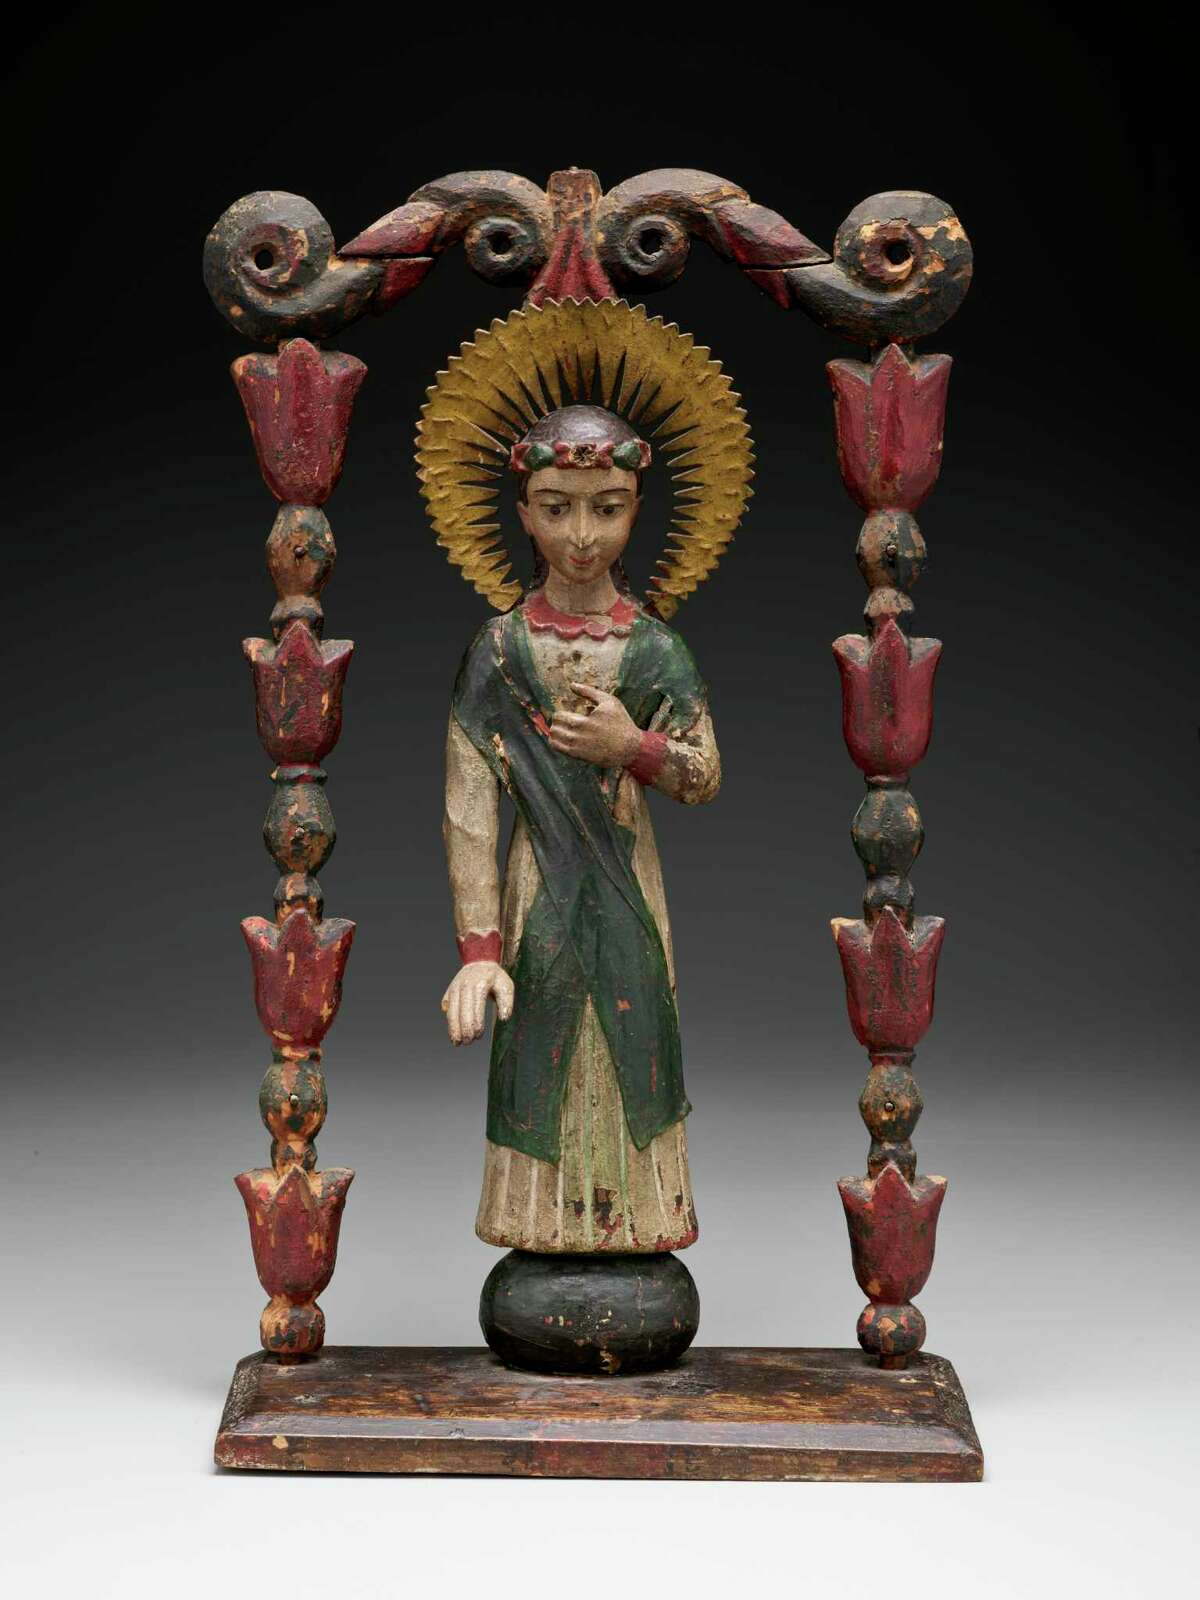 """Saint Rosalia of Palermo carving attributed to José Rafael Aragón from """"Devoted: Art and Spirituality in Mexico and New Mexico"""" at Dallas Museum of Art."""